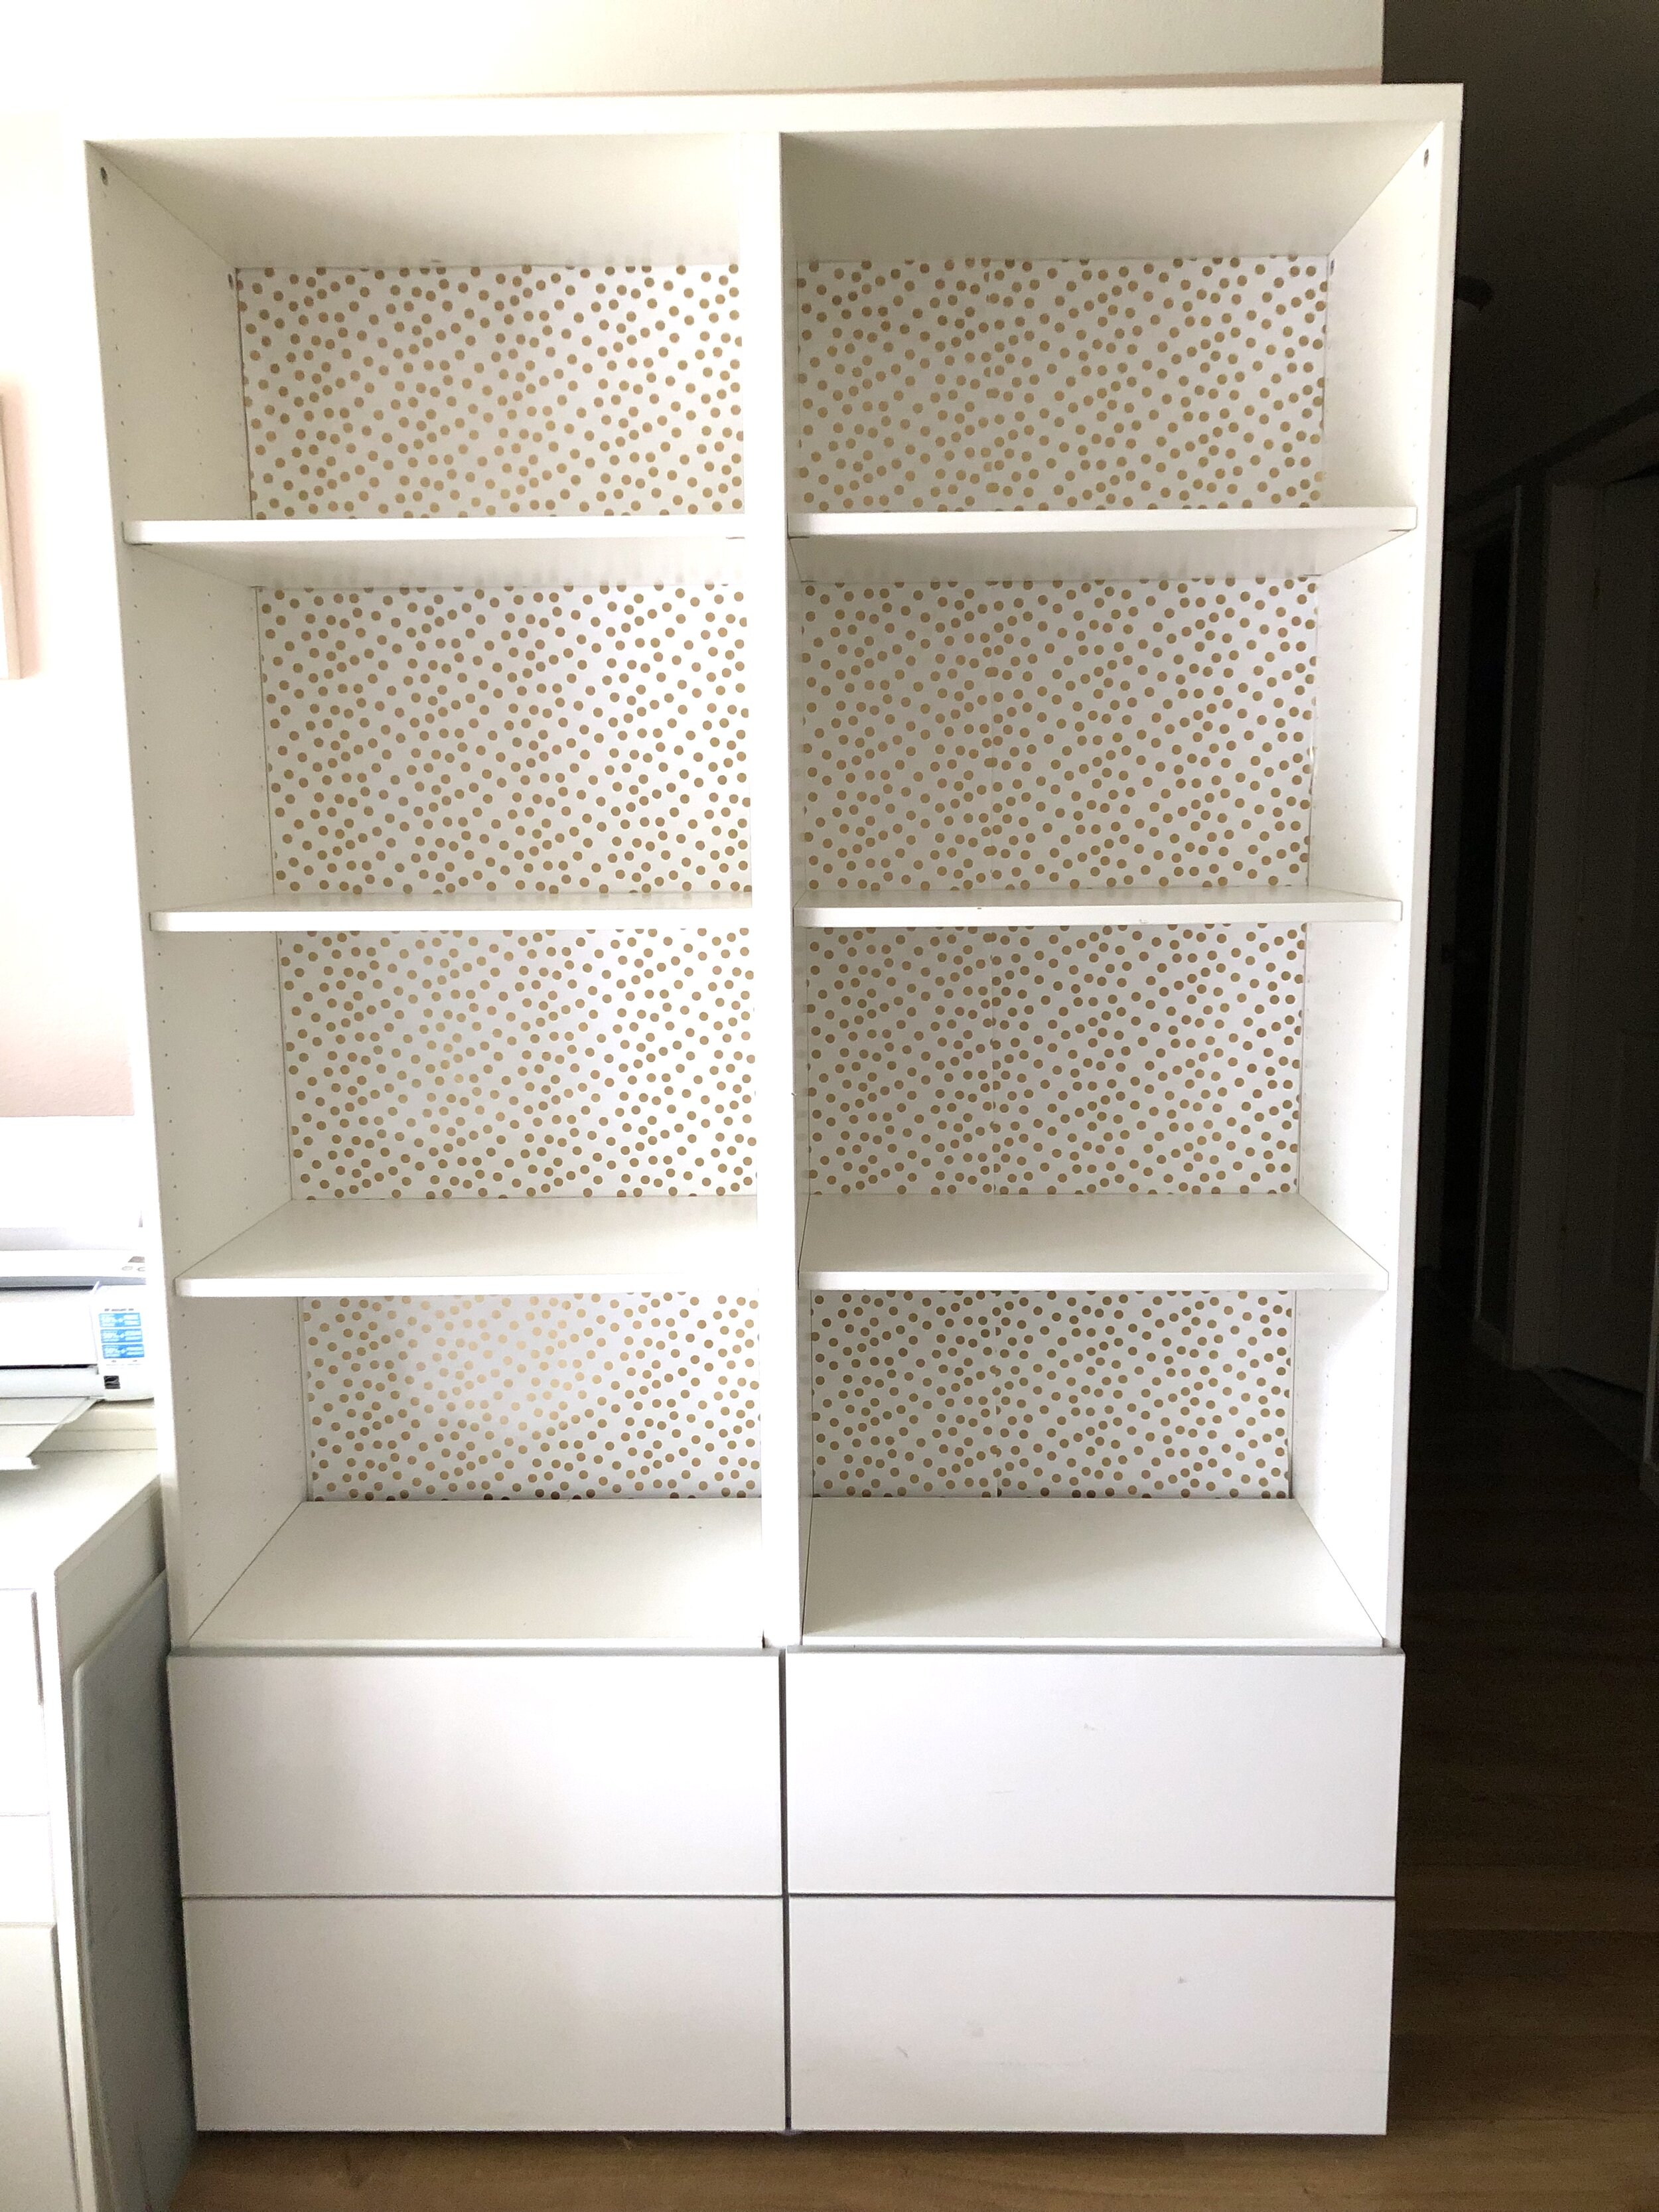 $100 Room Challenge, Wk 3: My Workspace- Budget Shelf Backing & Buying